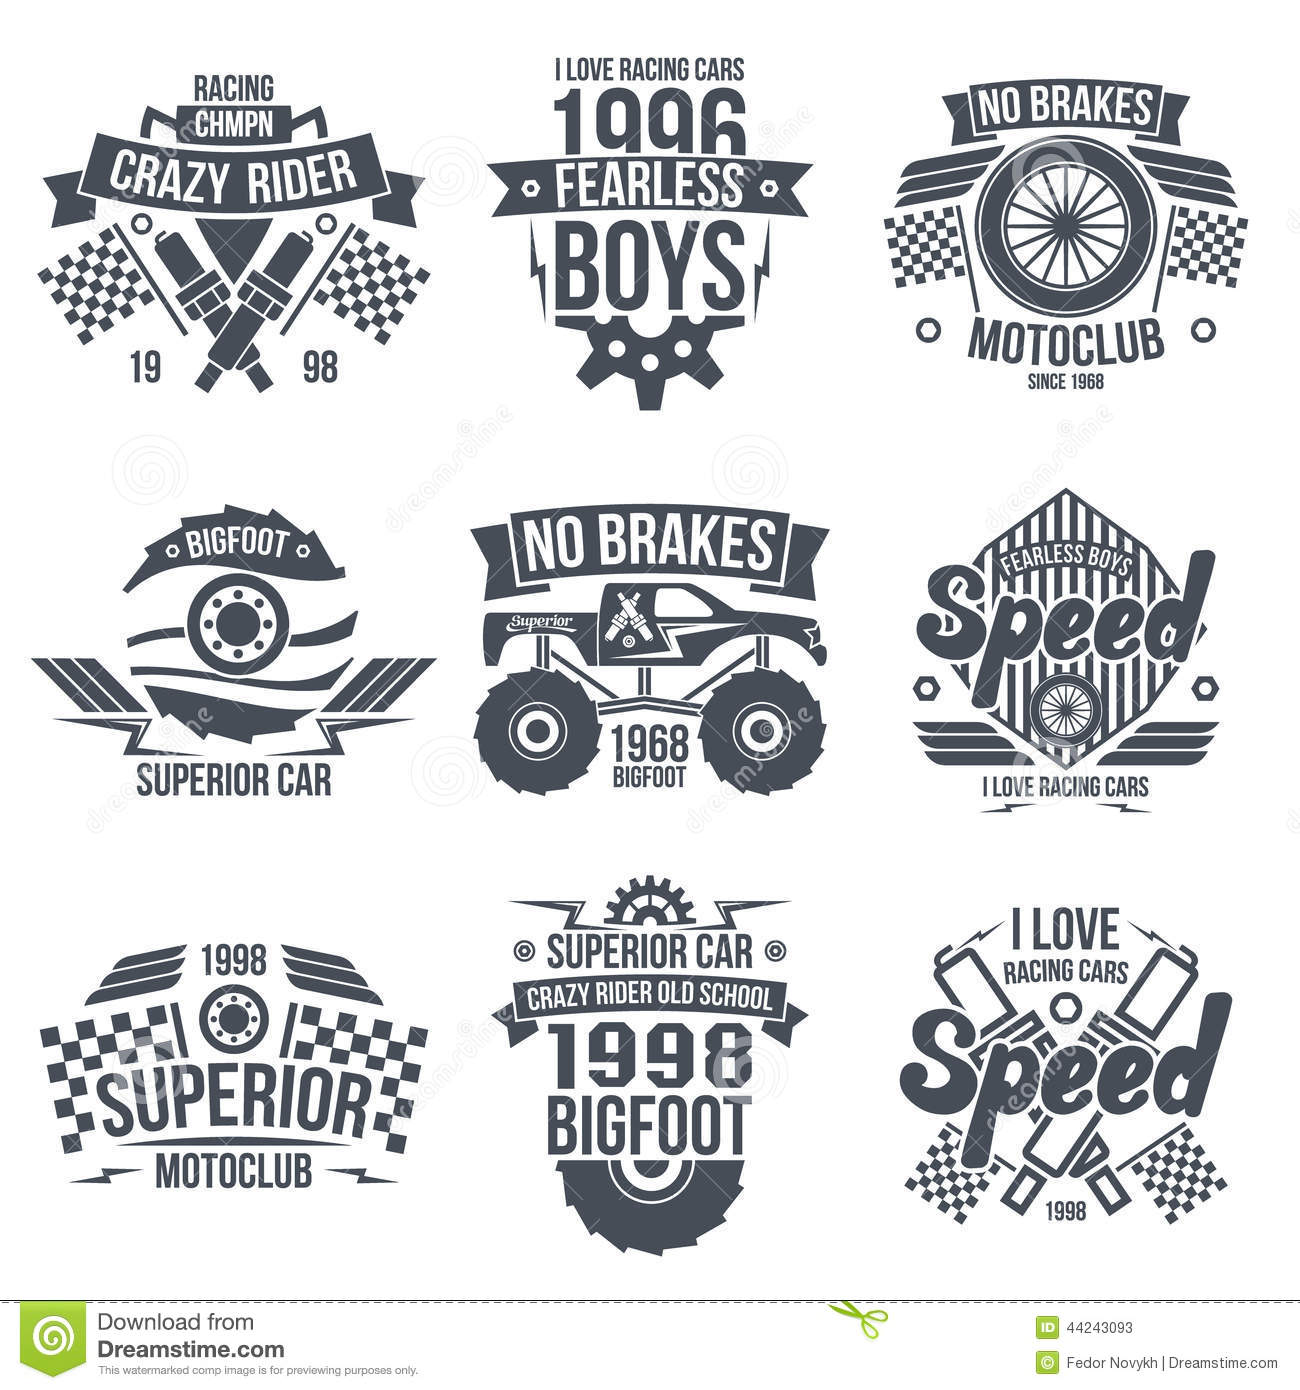 ... cars. Graphic design for t-shirt. Dark print on white background